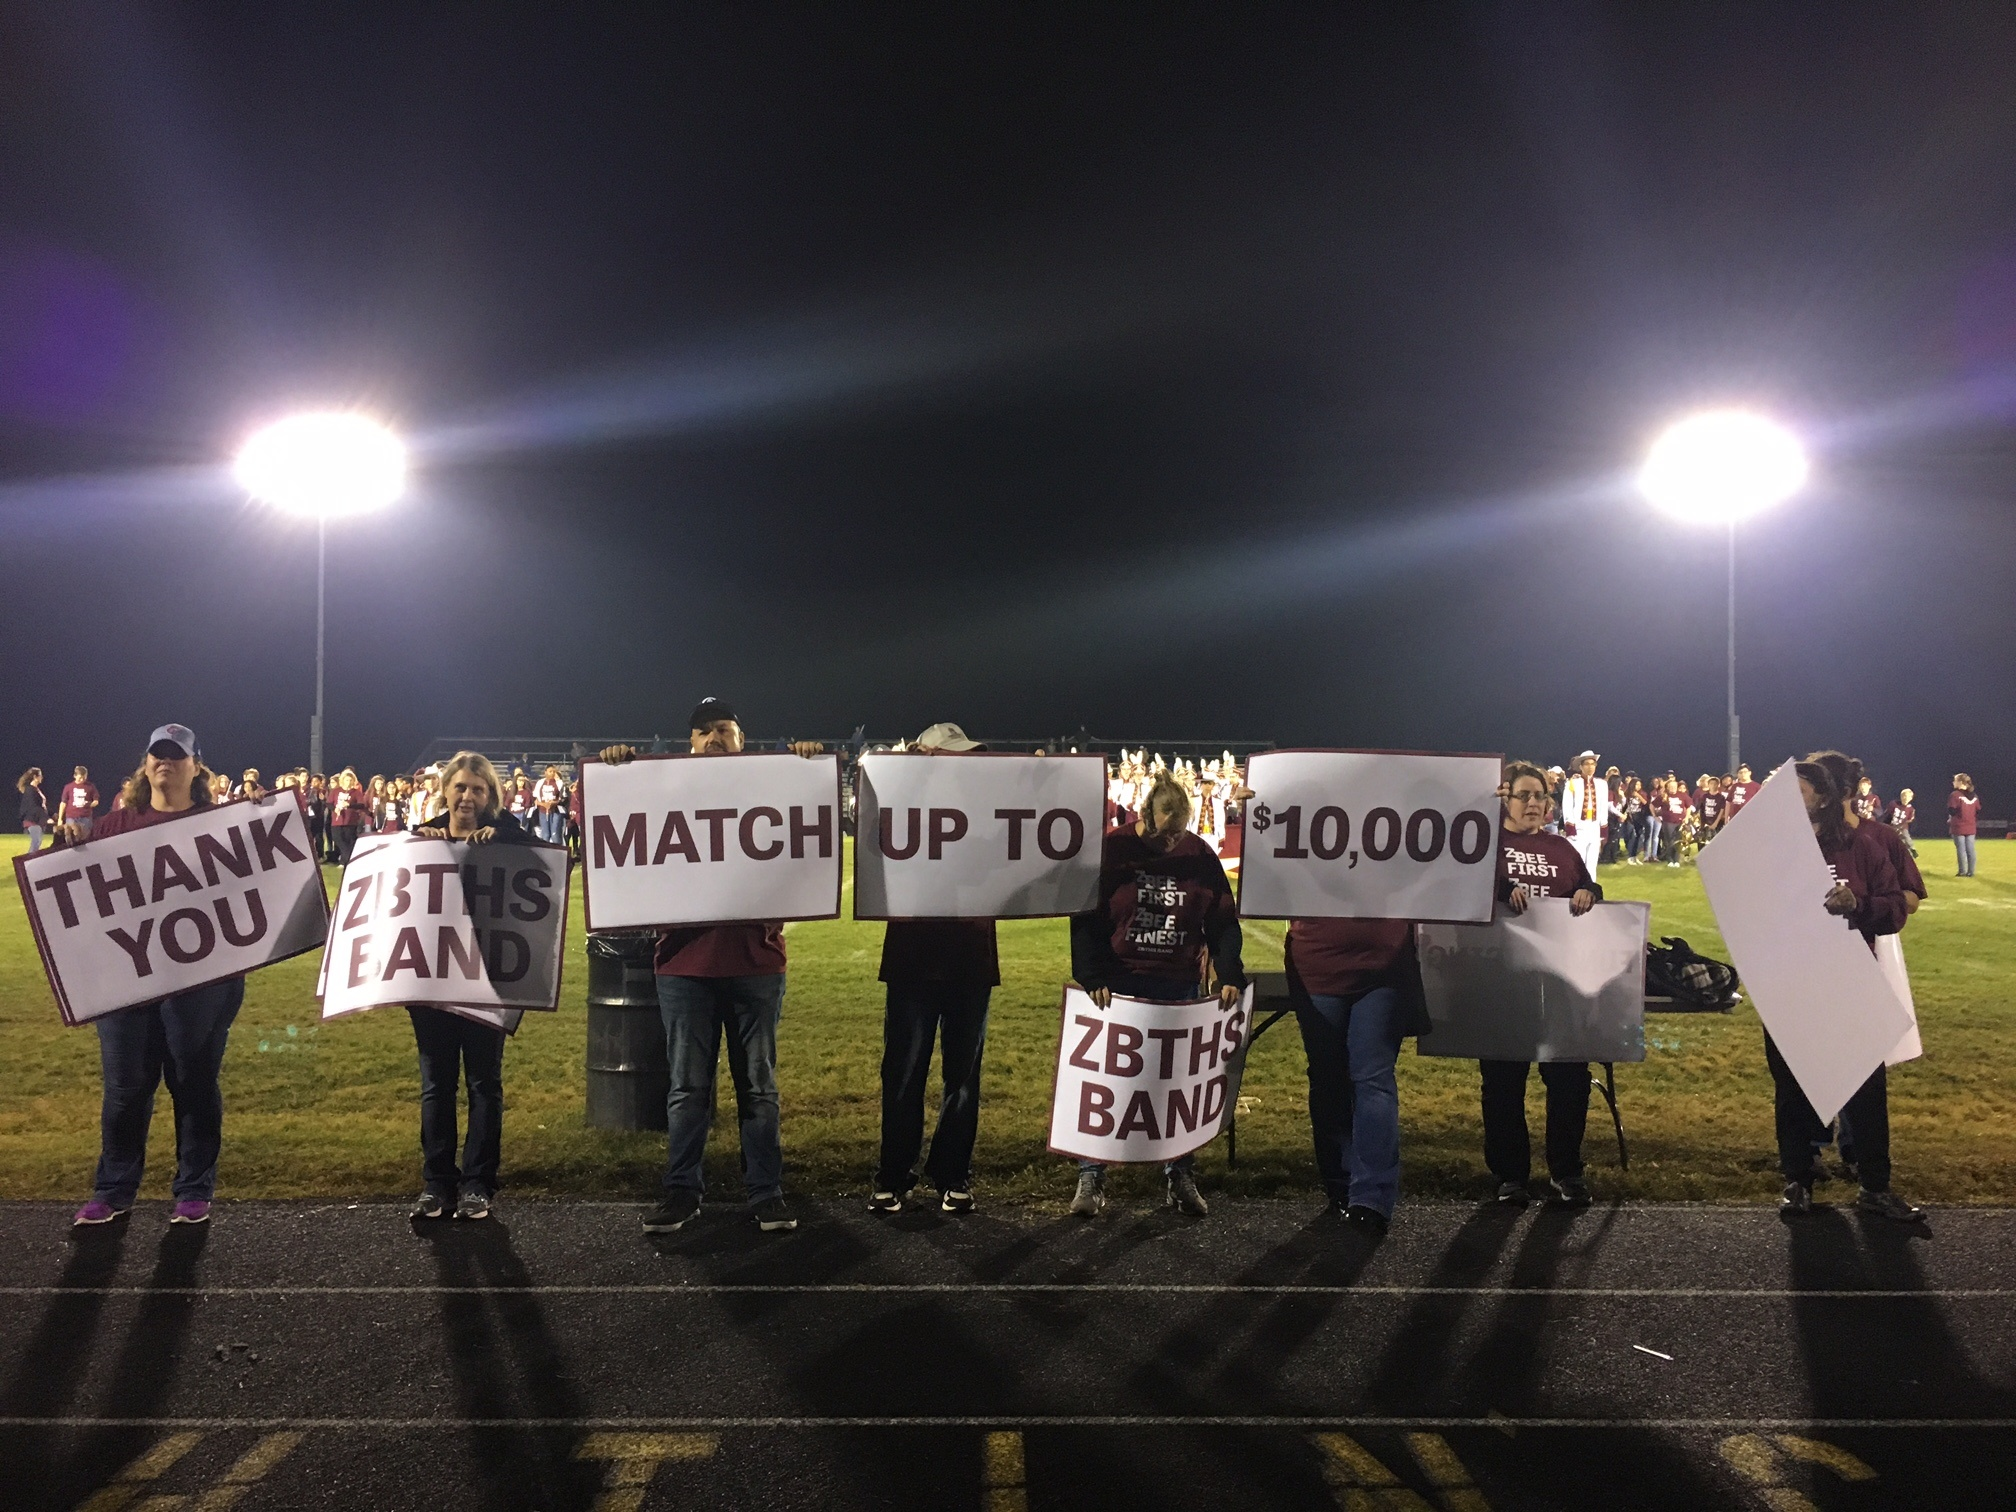 Picture: Band boosters holding up signs about WFC matching $10,000 in their band fundraising effort